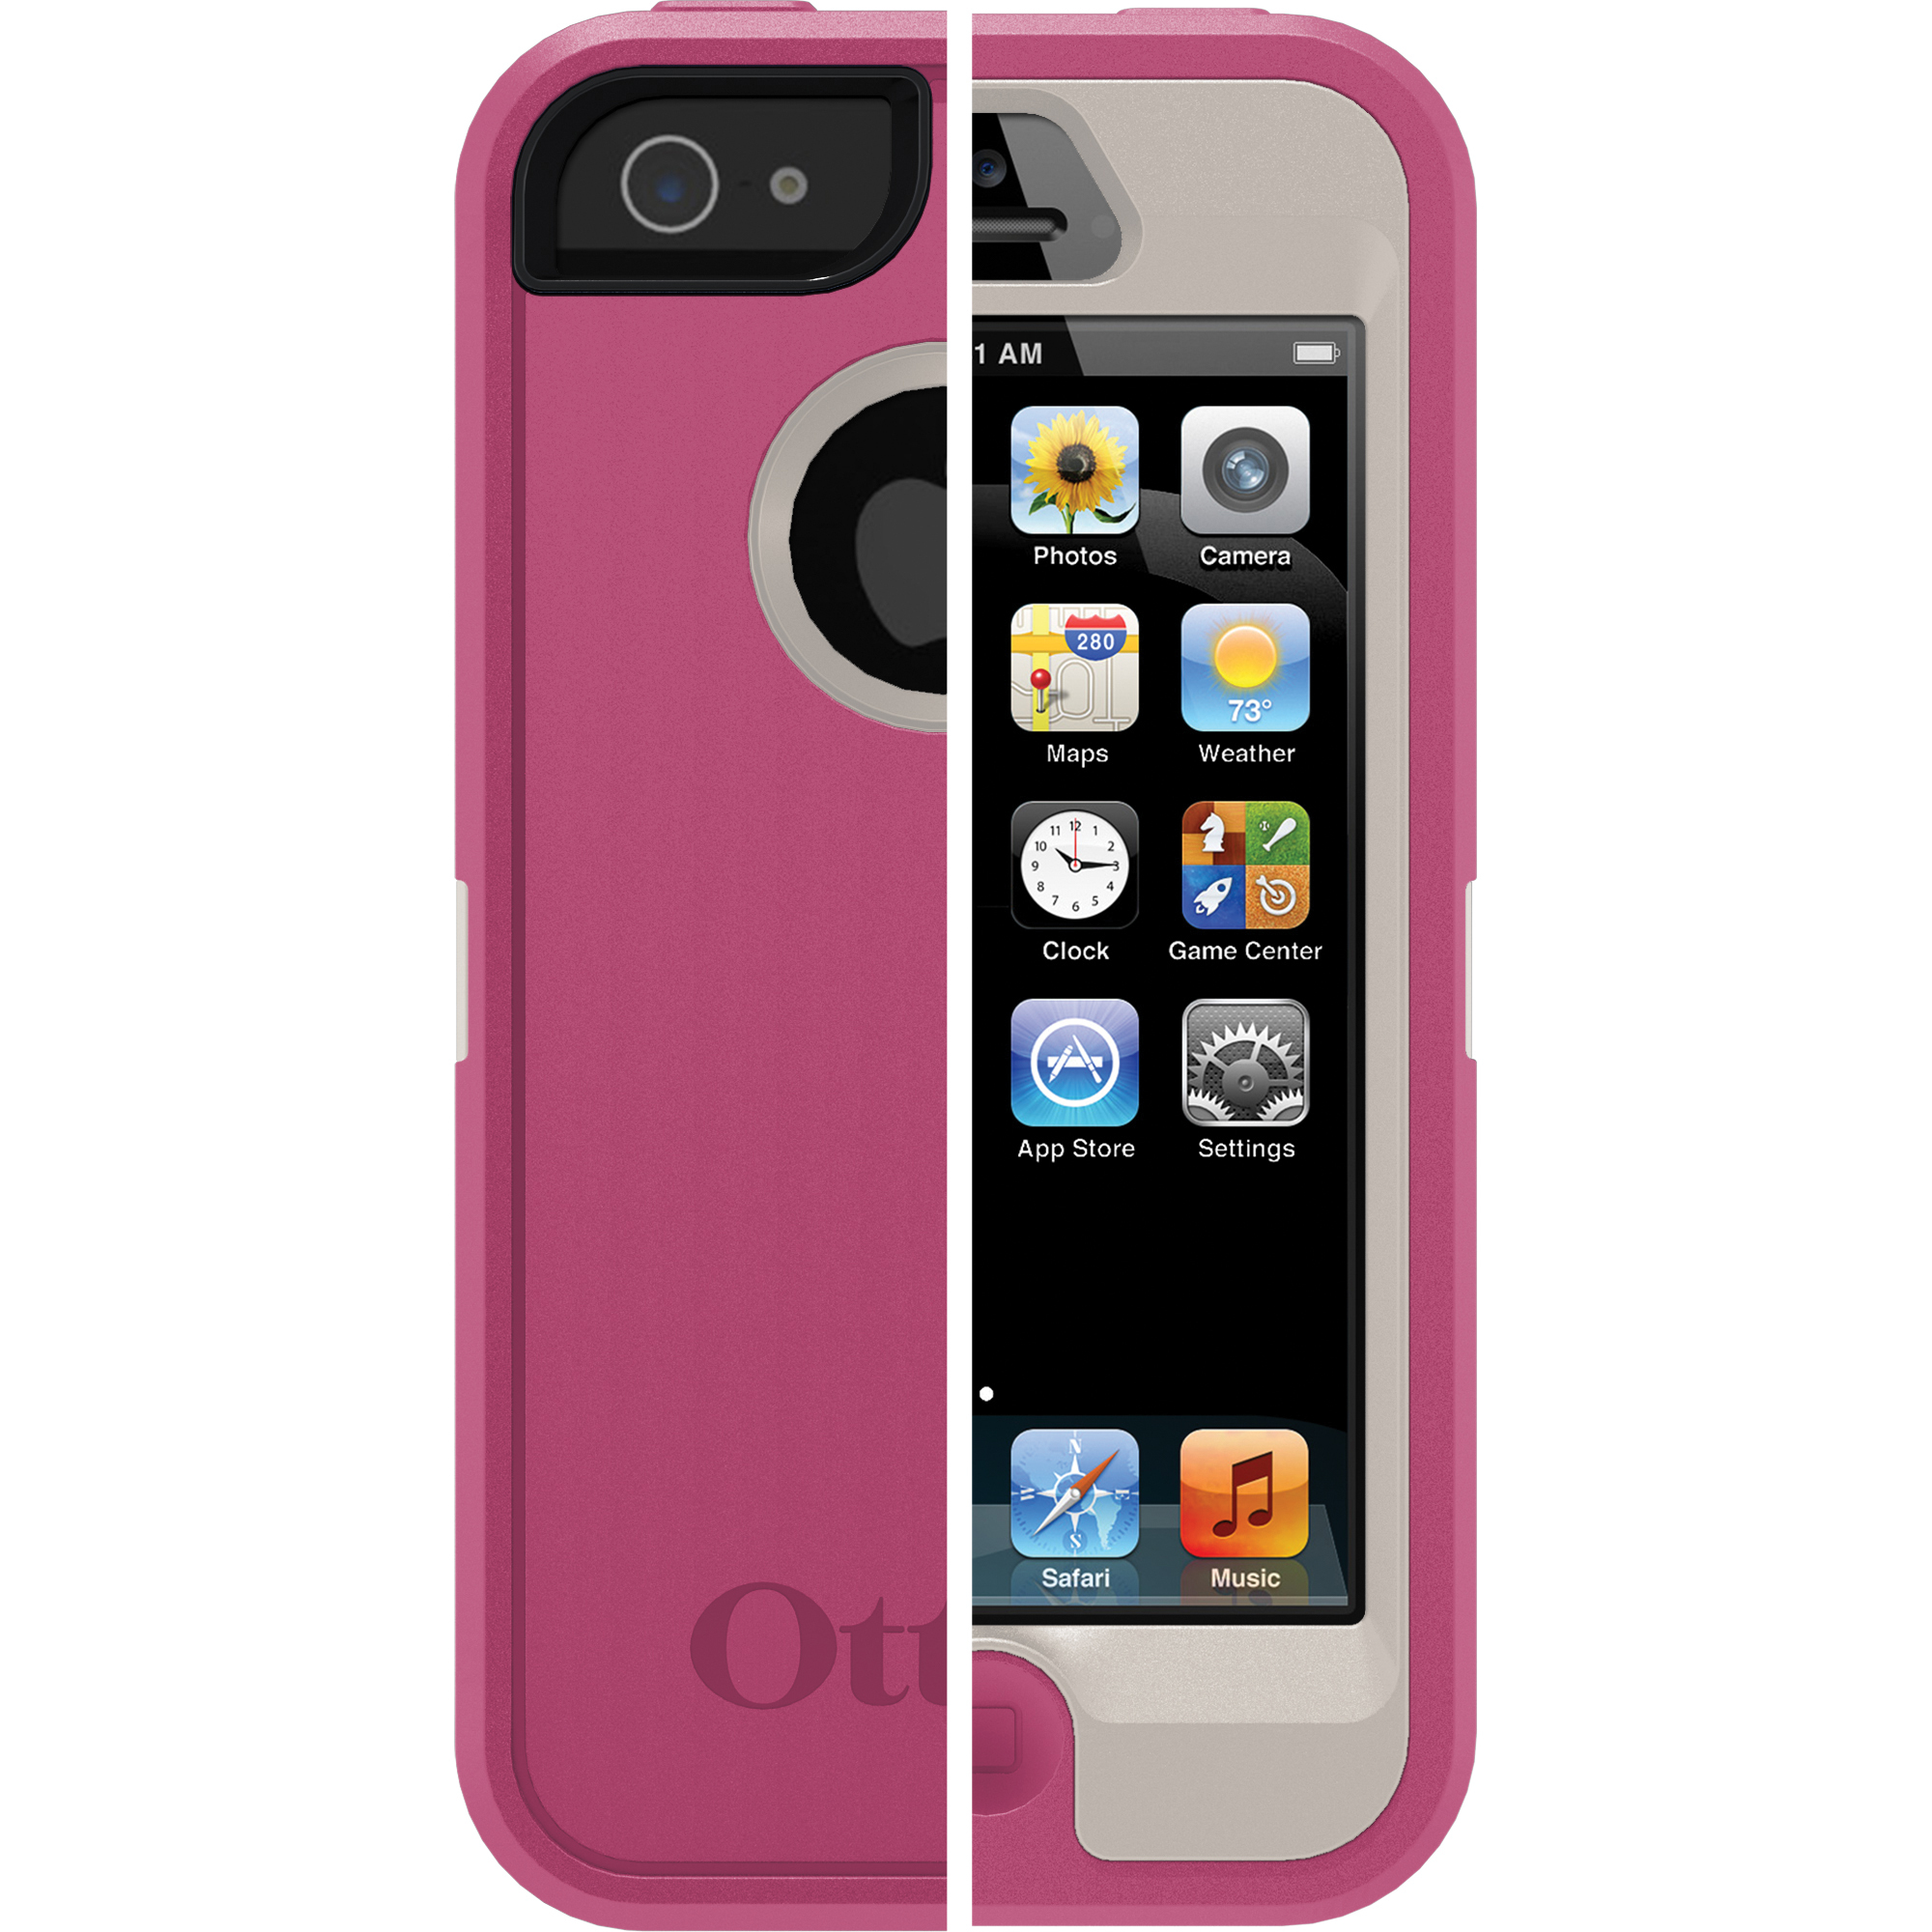 Otterbox Outer Shell Iphone